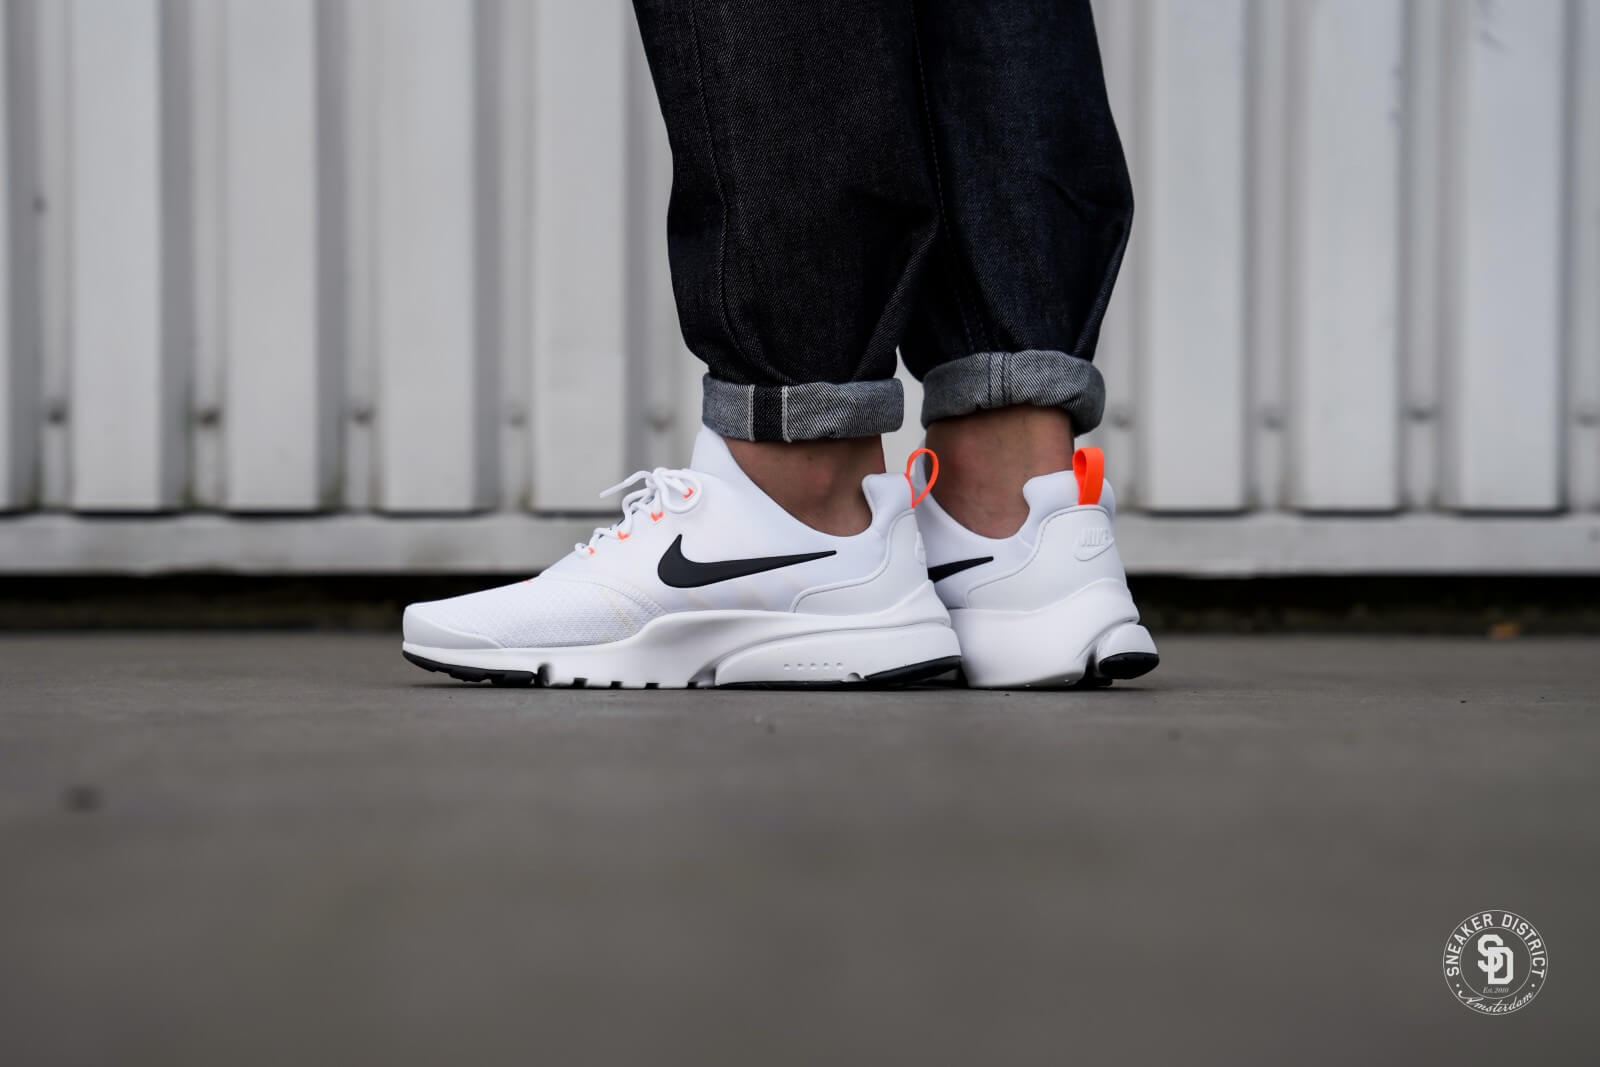 Nike Presto Fly Just Do It White/Black-Total Orange - AQ9688-100